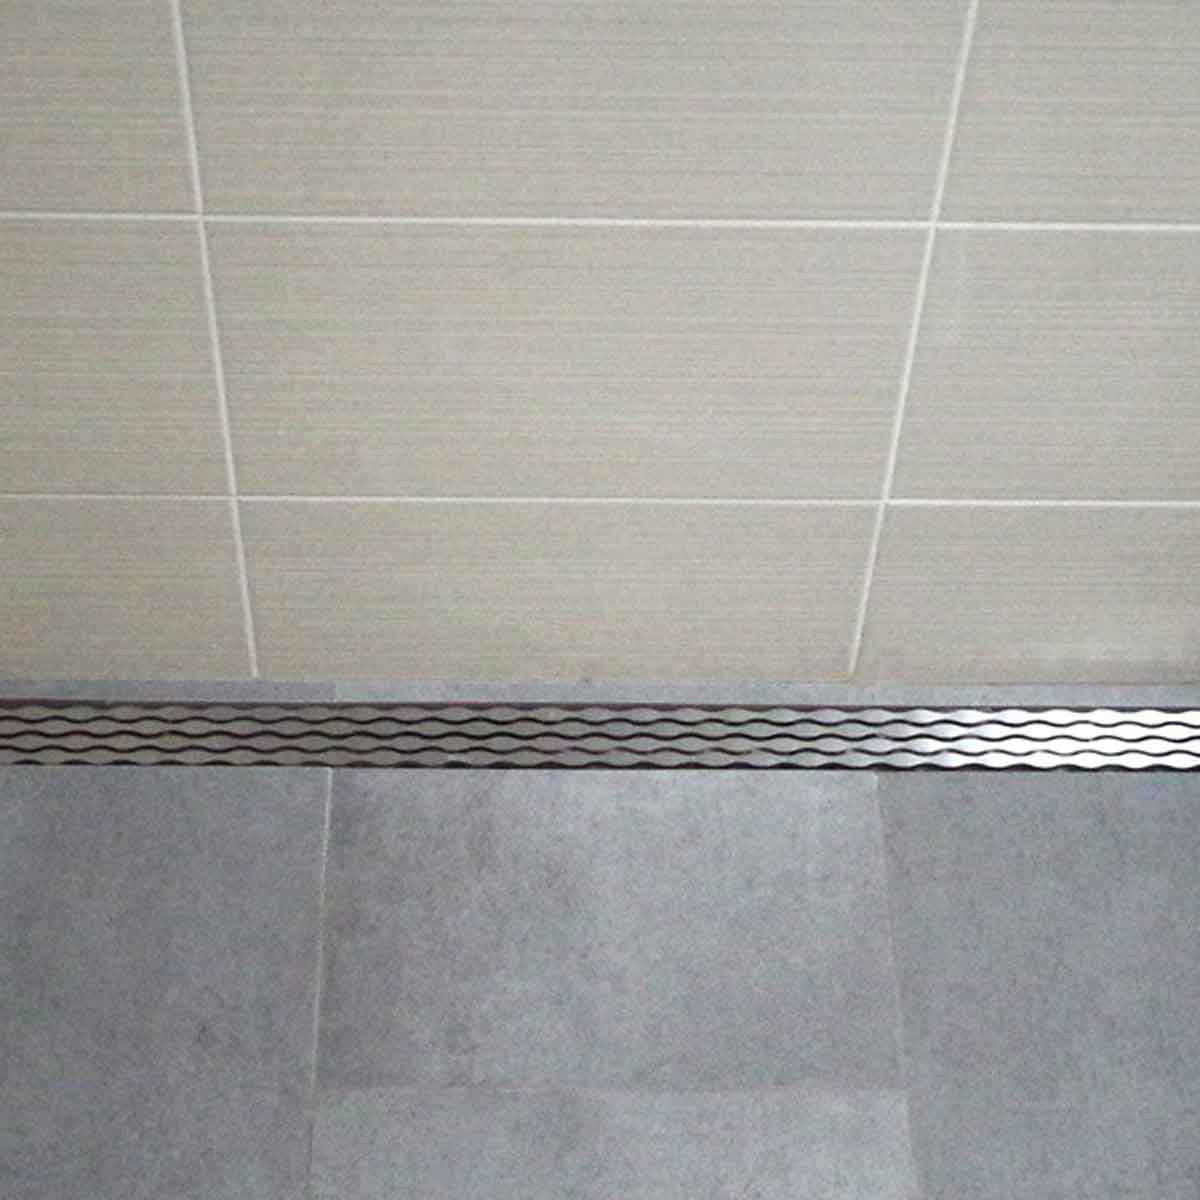 PLD30-STREAM40 Quick Drain ProLine Linear Shower Drain